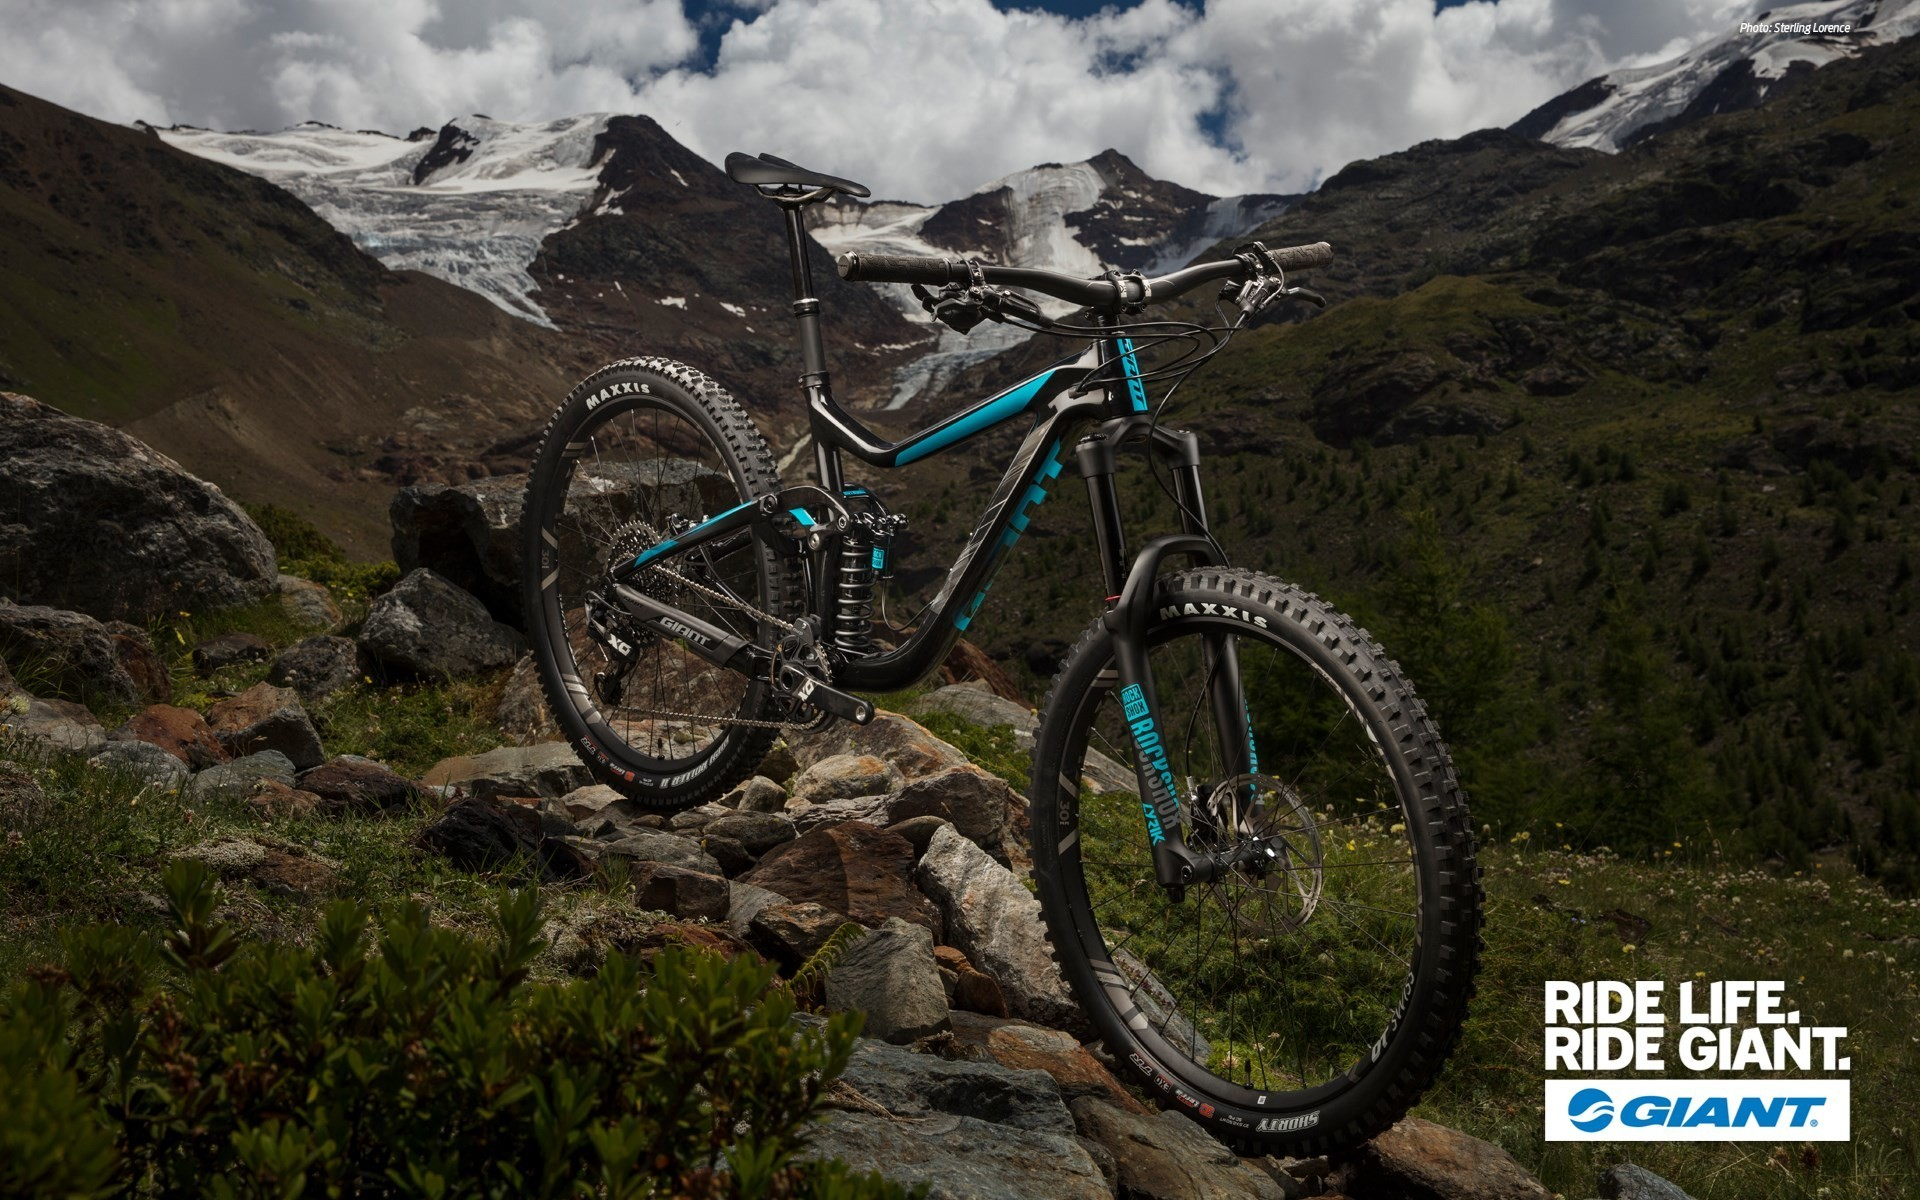 Downhill Mountain Bike 2018 Wallpapers 73 Background Pictures